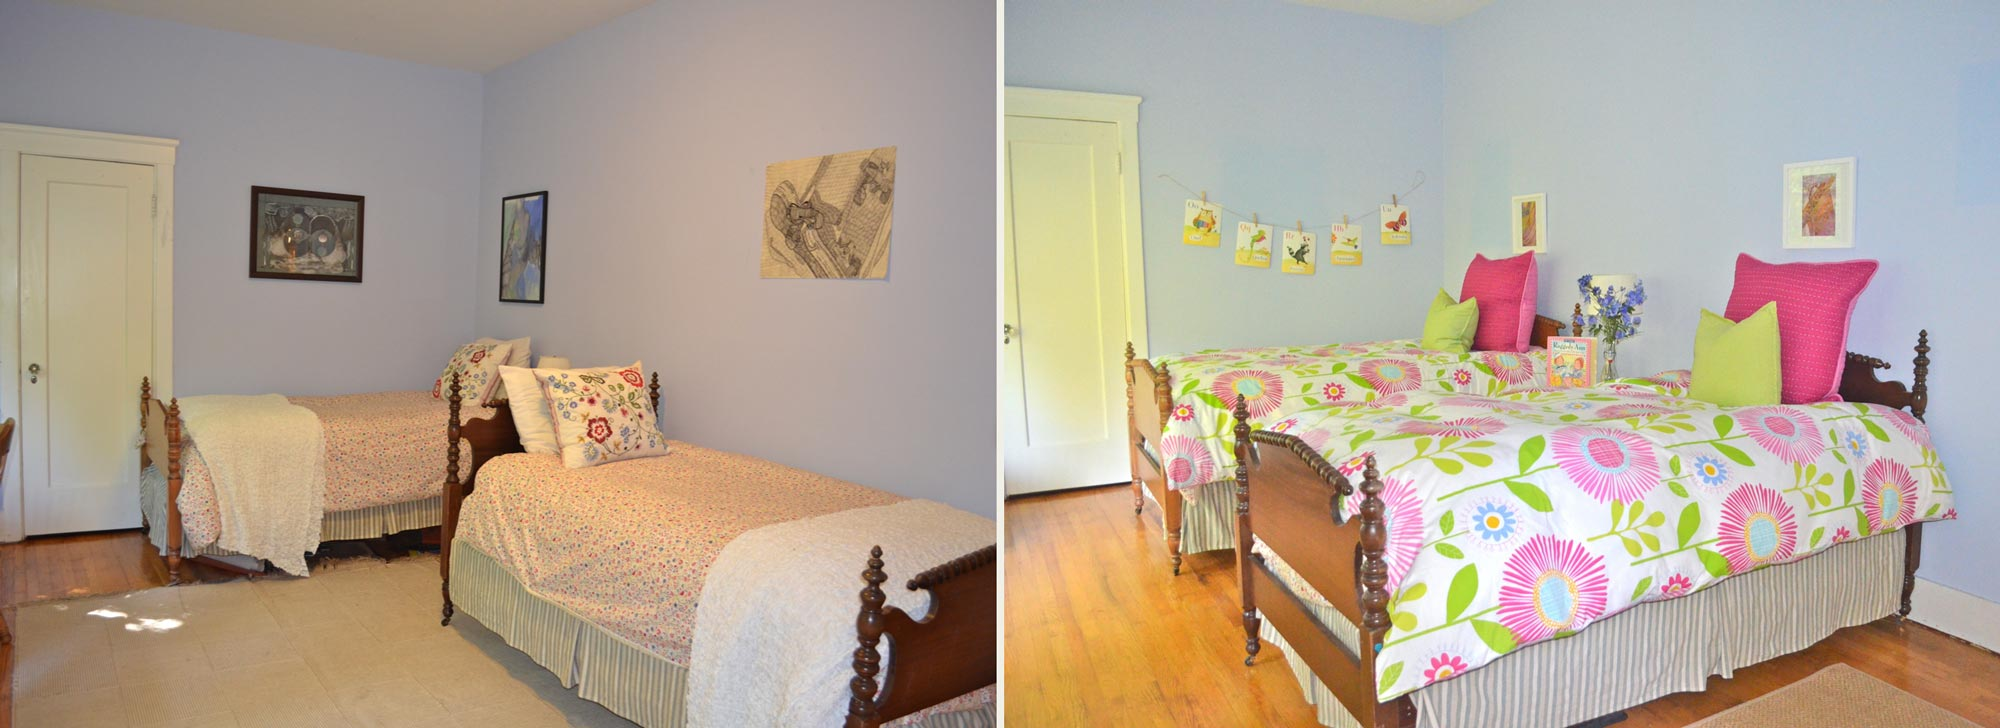 cary-nowell-staging-before-after-17.jpg